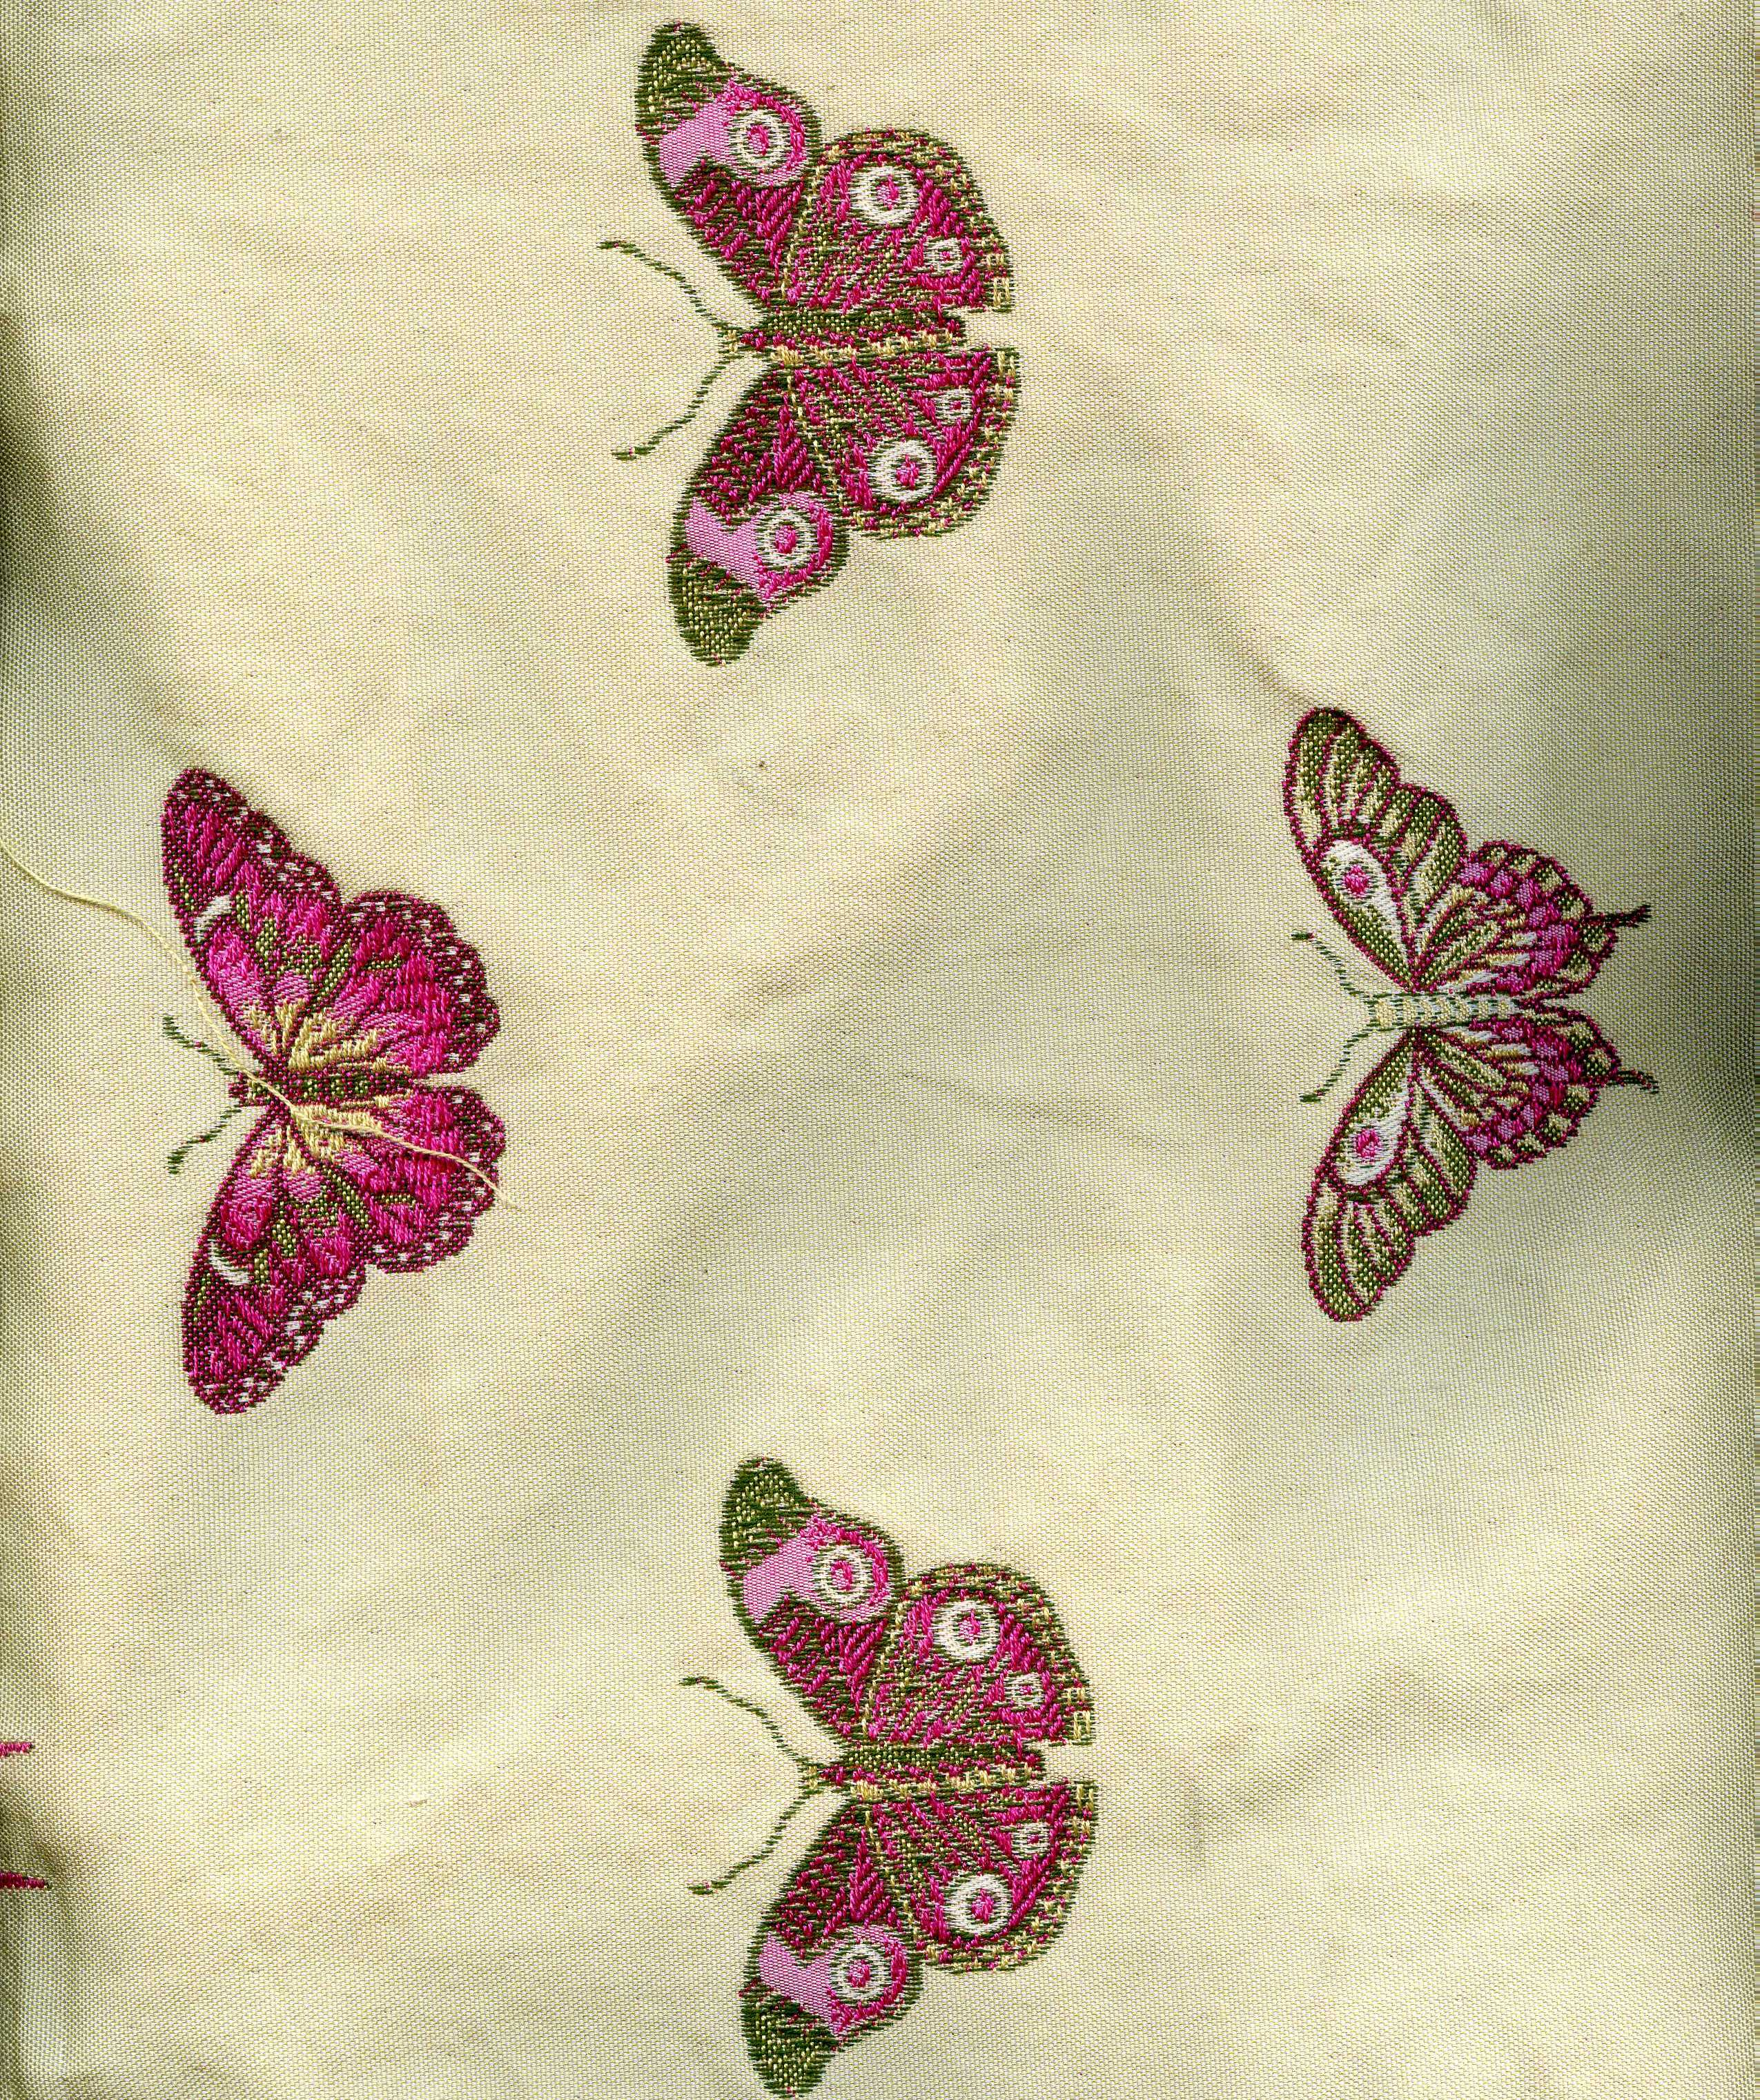 Beautiful Tapestry of Hot Pink and Green Butterflies on a Cream